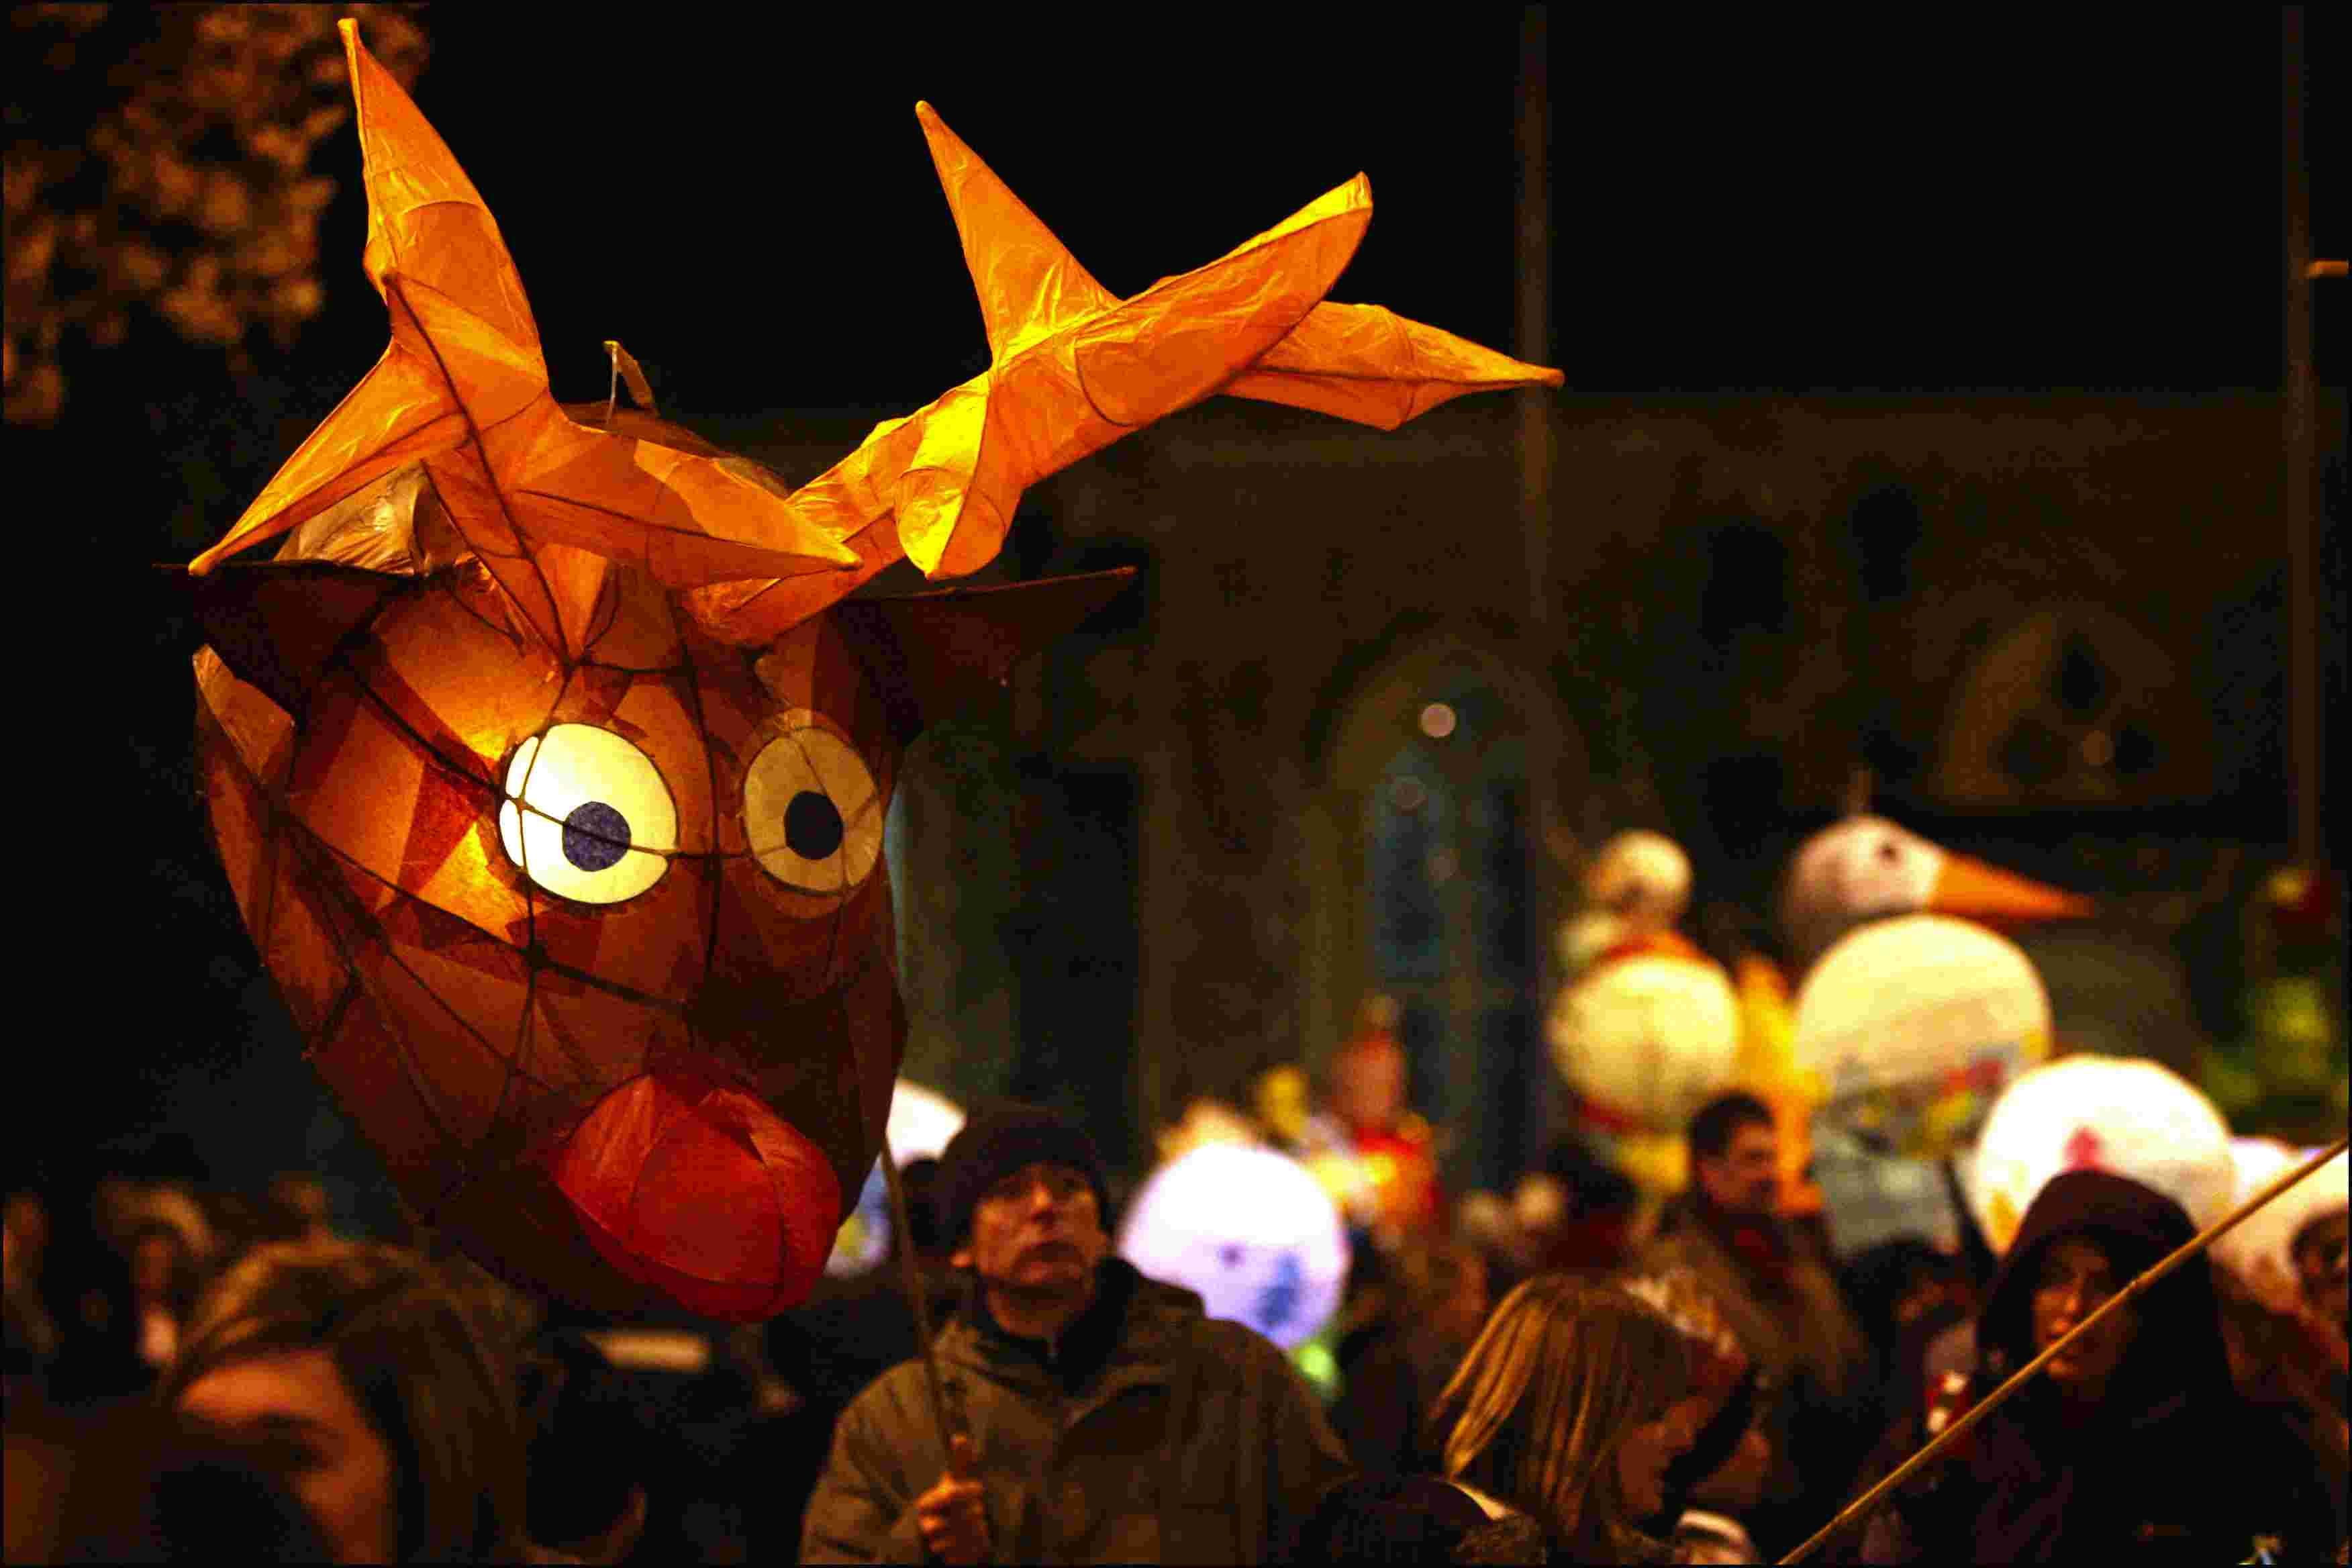 The Winchester Christmas Market traditionally opens with a lantern parade